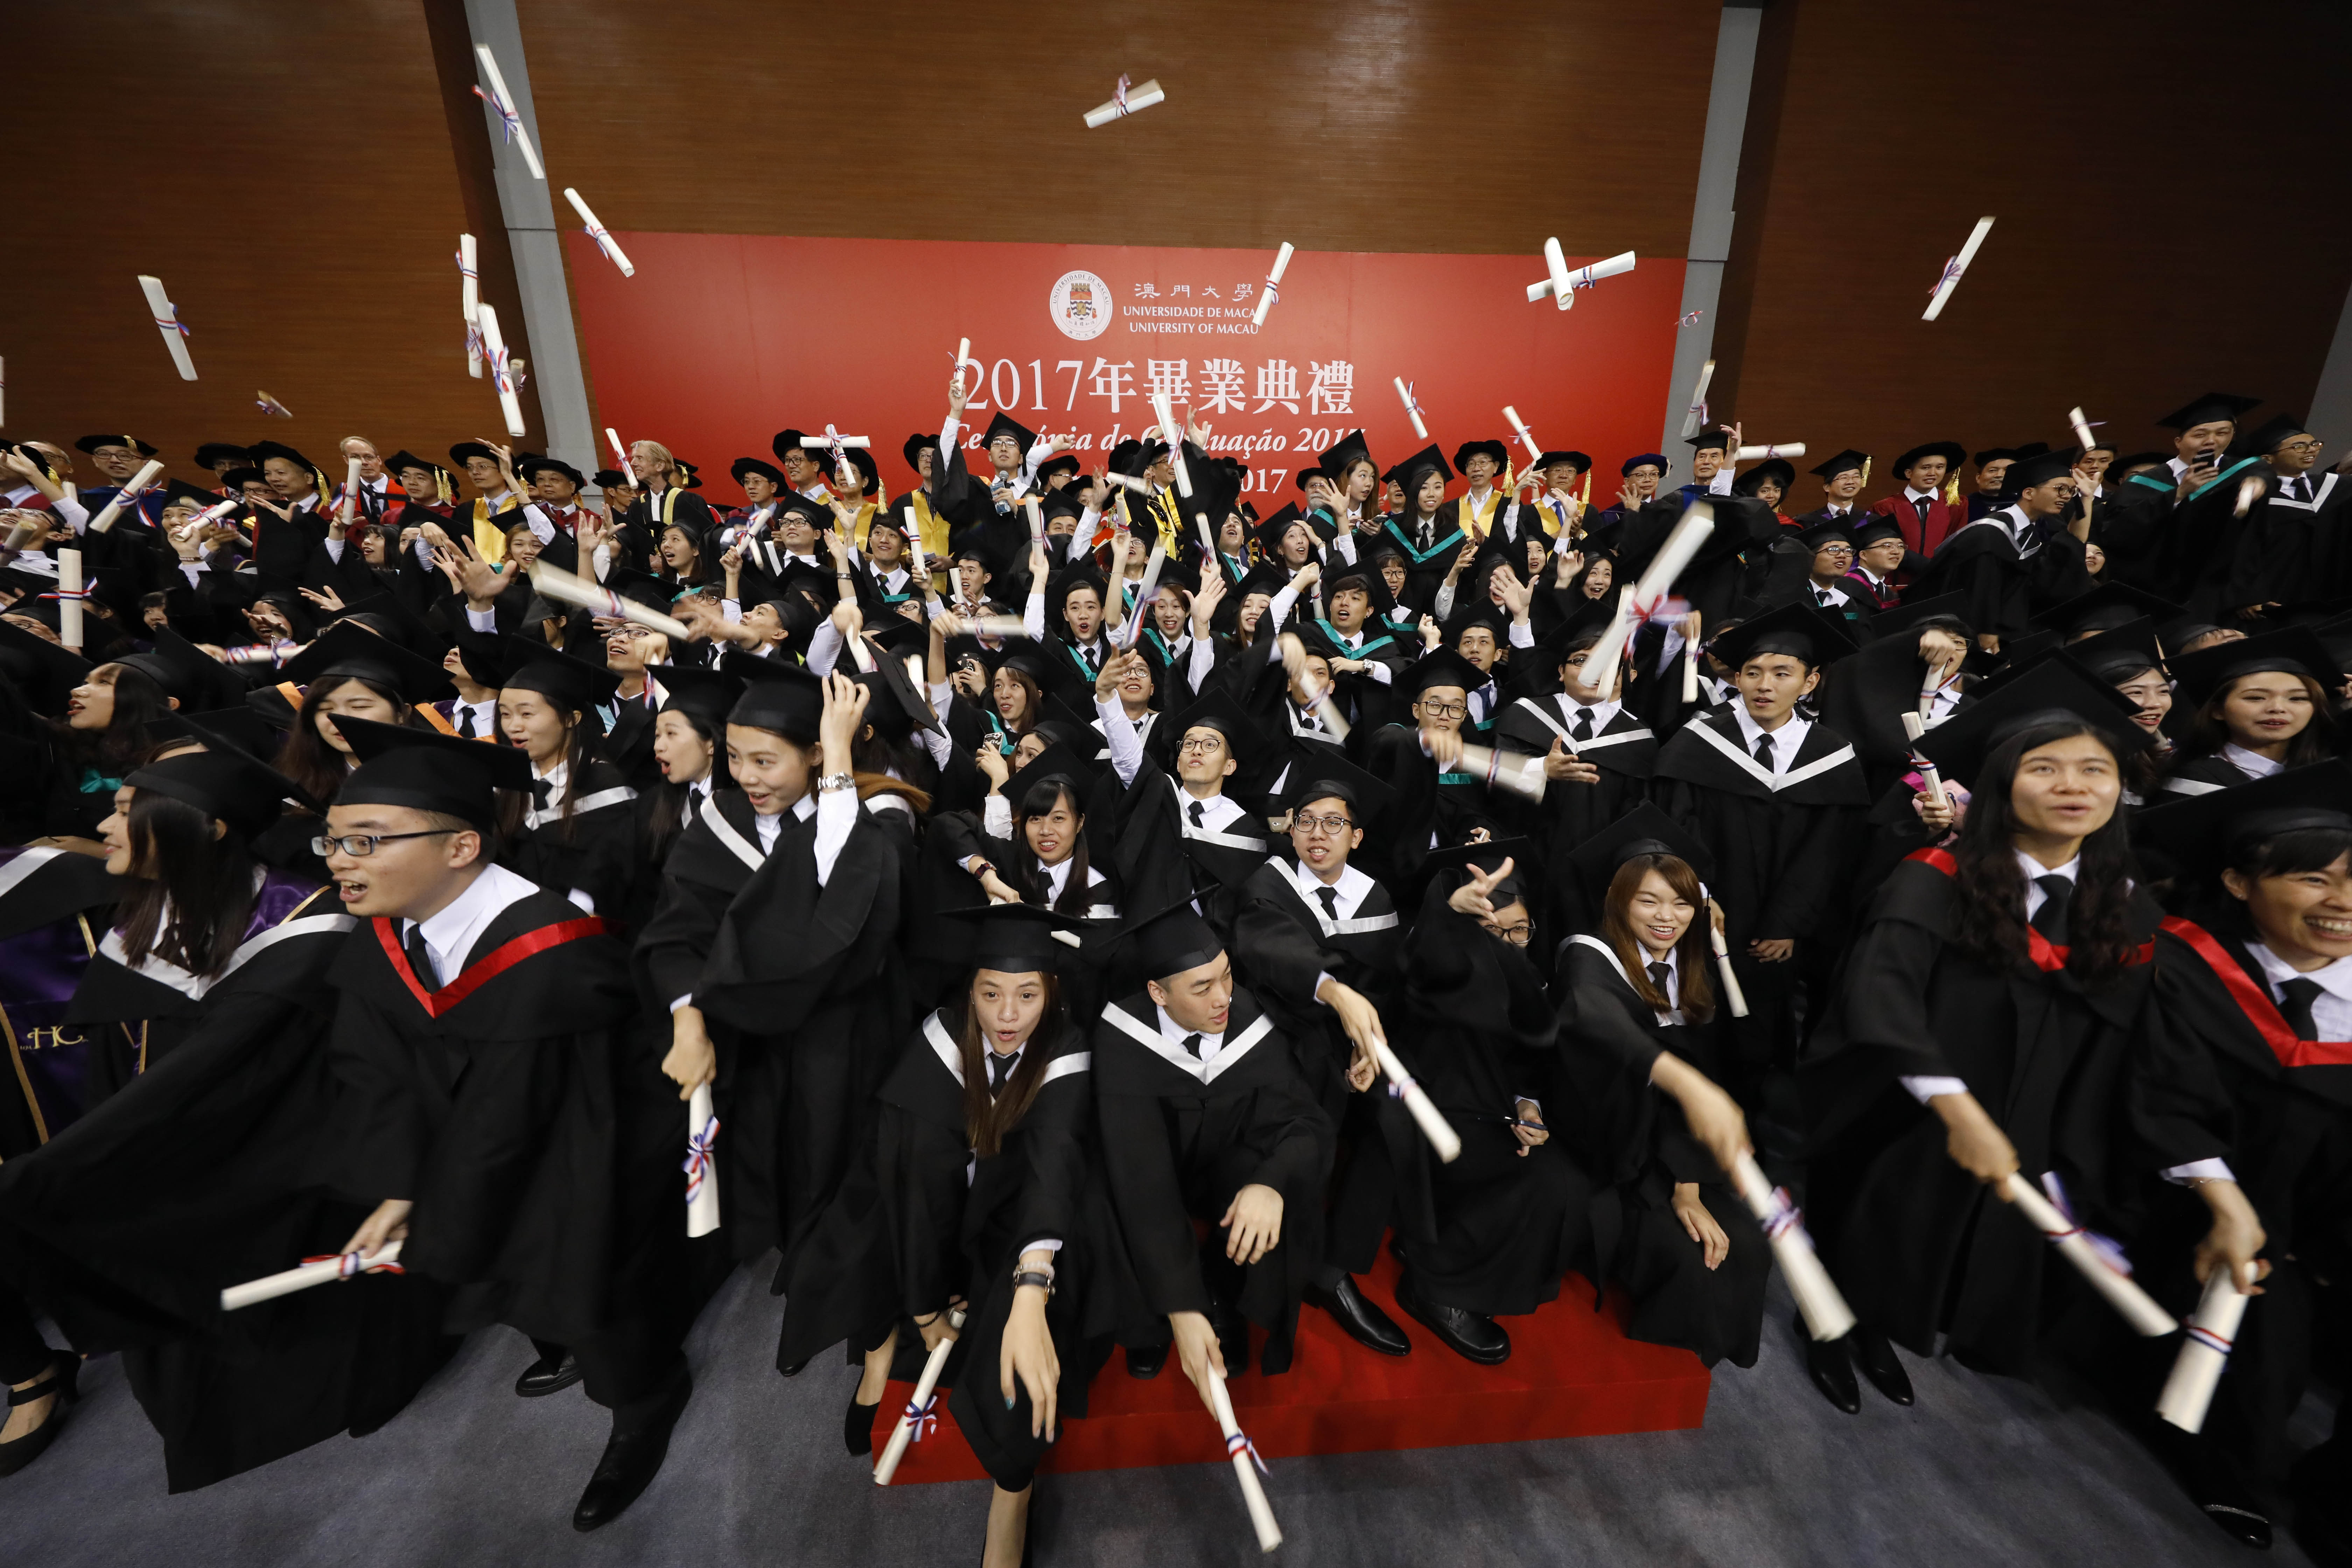 UM has become an important institution for training higher-level talent in Macao